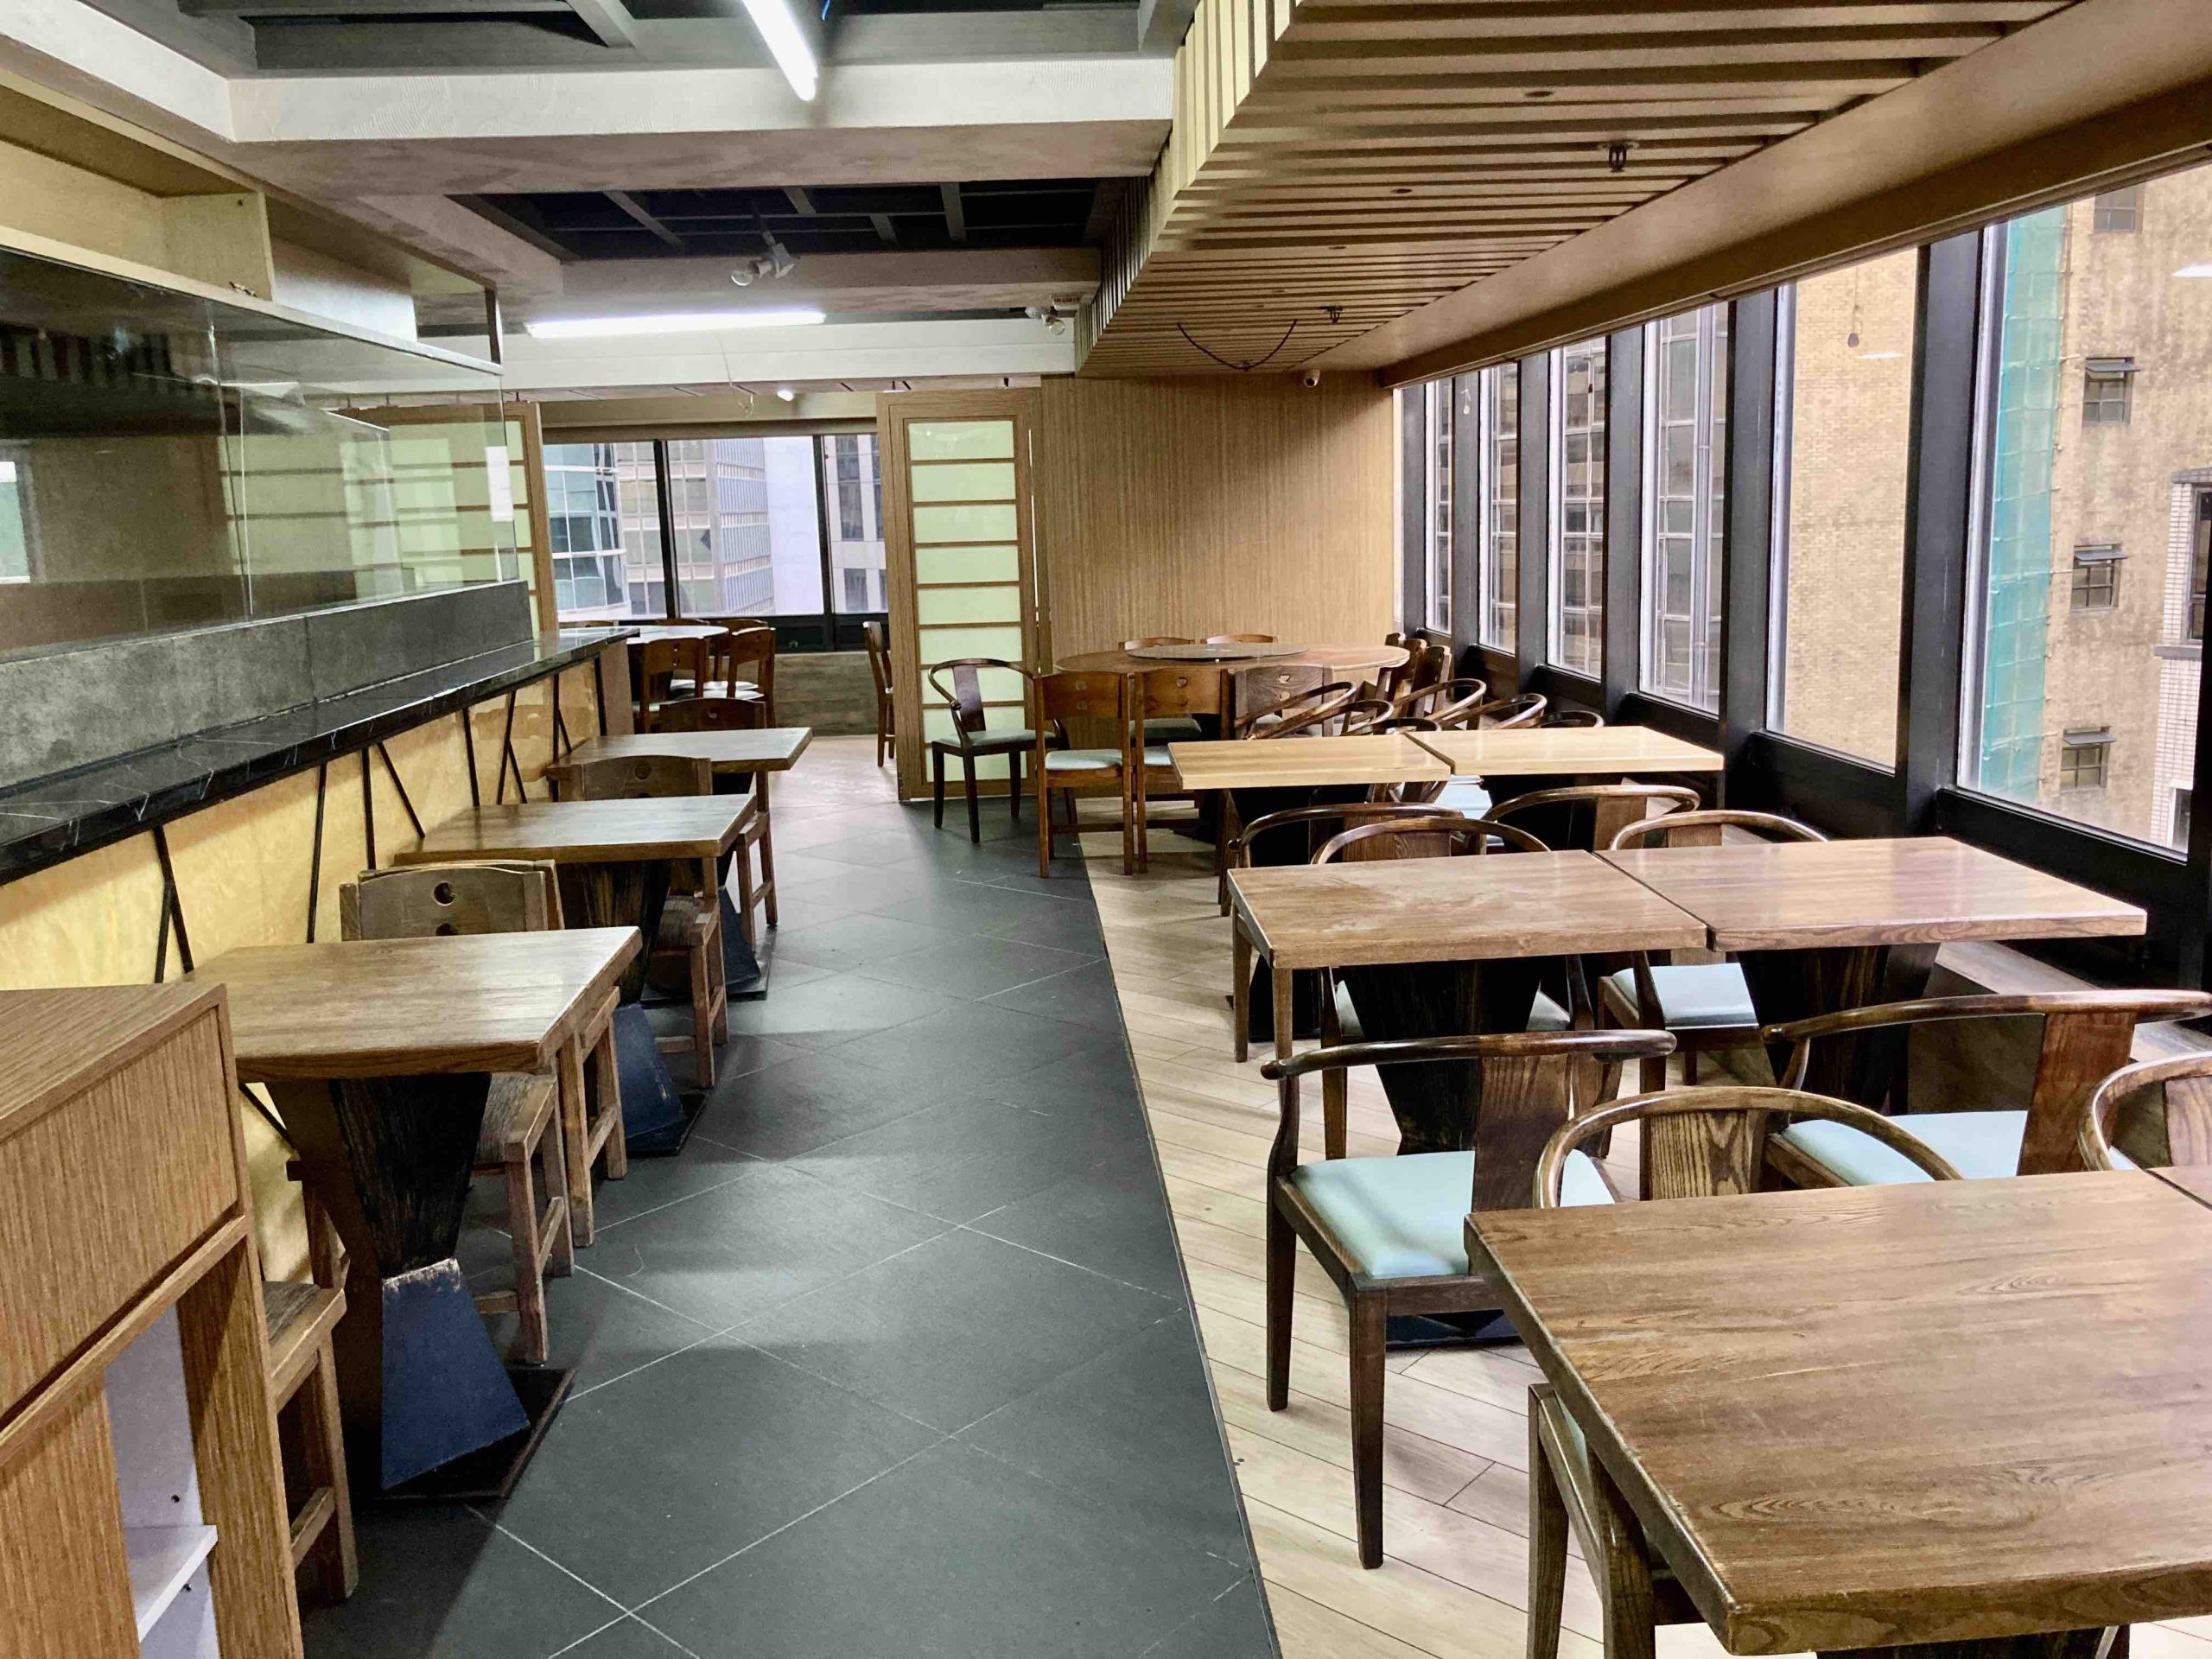 HK Central Upstairs Restaurant with fitting for Lease